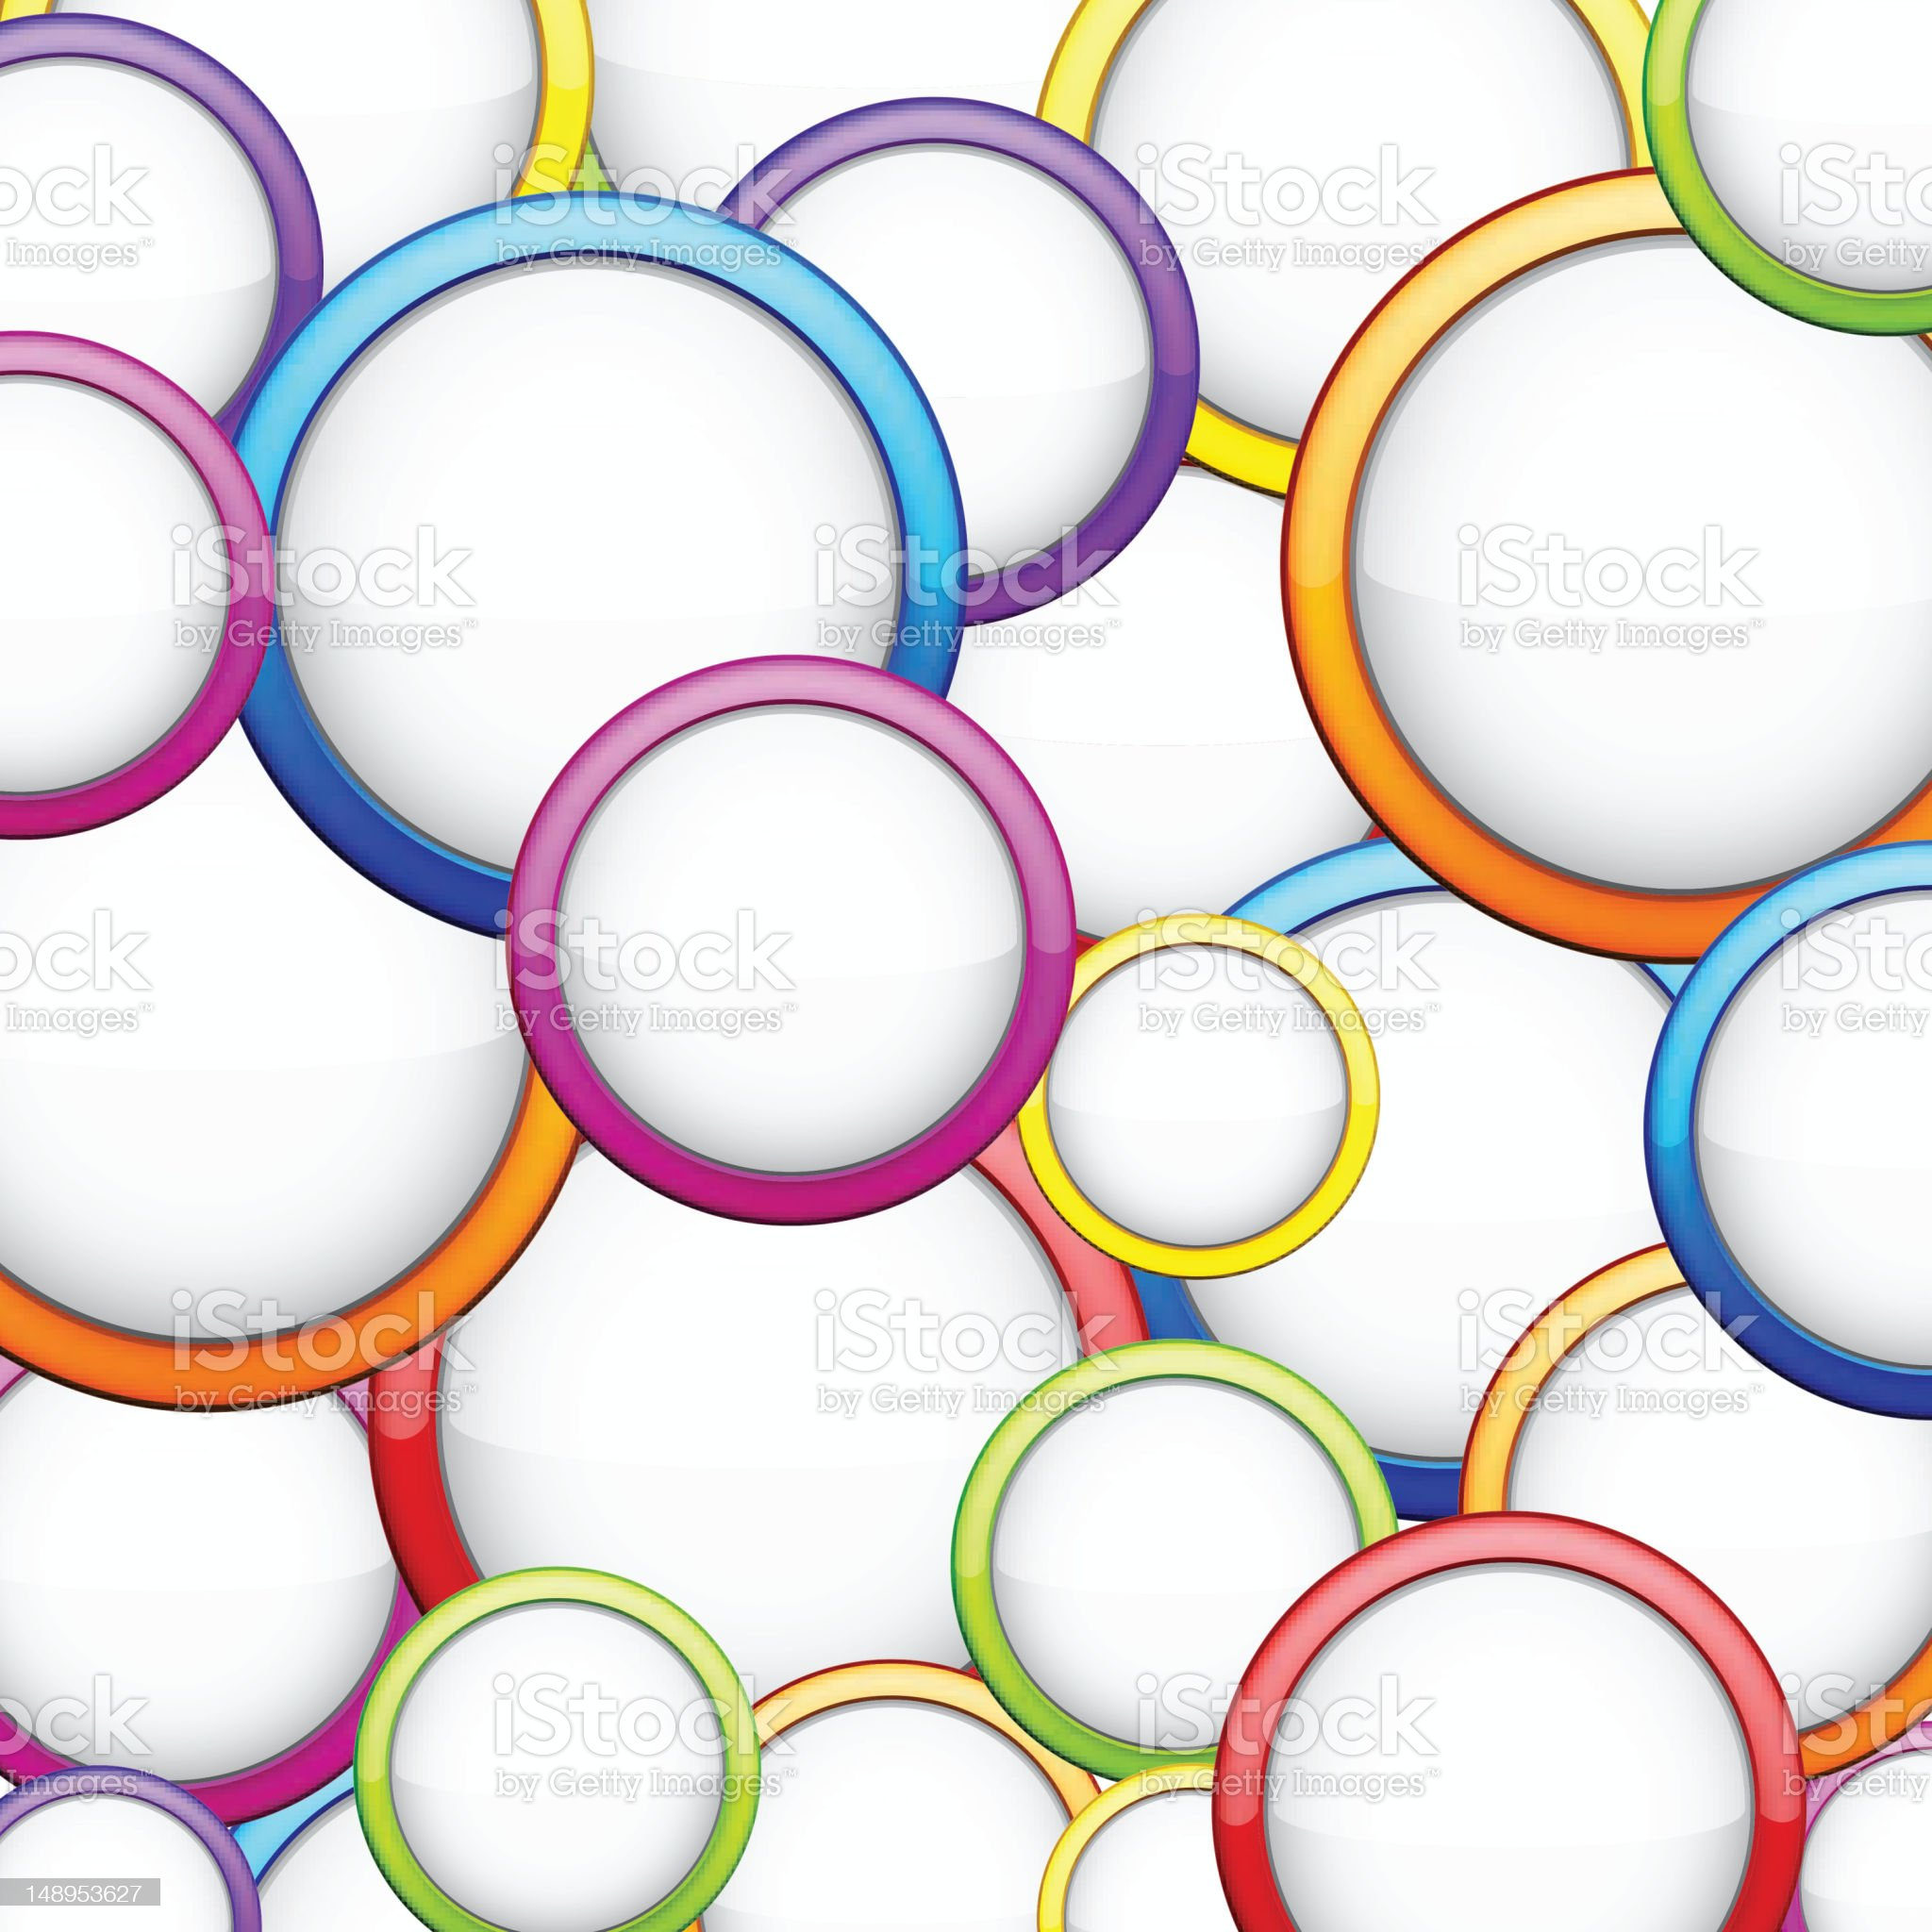 Colorful background with glossy circles. royalty-free stock vector art